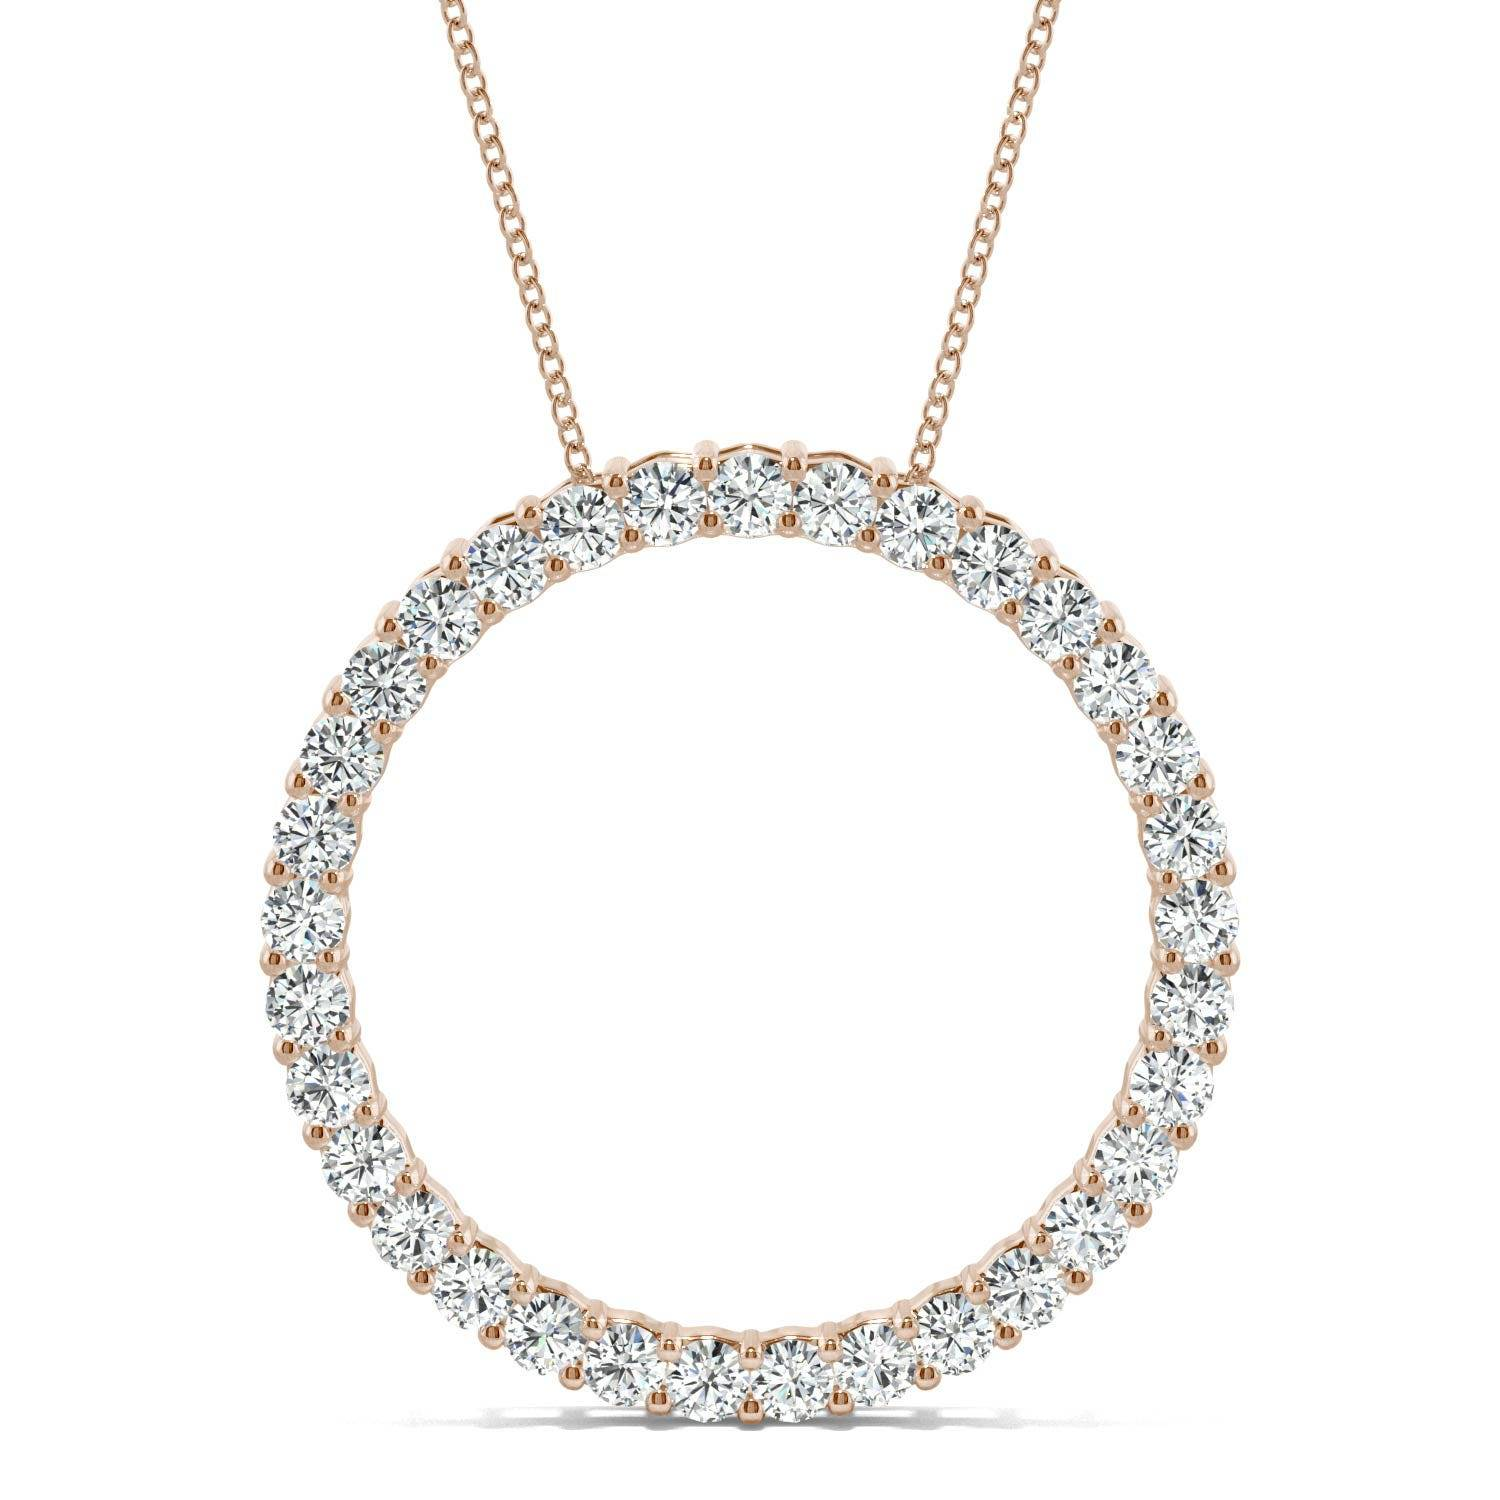 Charles & Colvard Shared Prong Circle Necklace in 14K Rose Gold, 0.50CTW Round Forever One Moissanite Accent Stones Charles & Colvard  - Rose Gold - Size: One Size